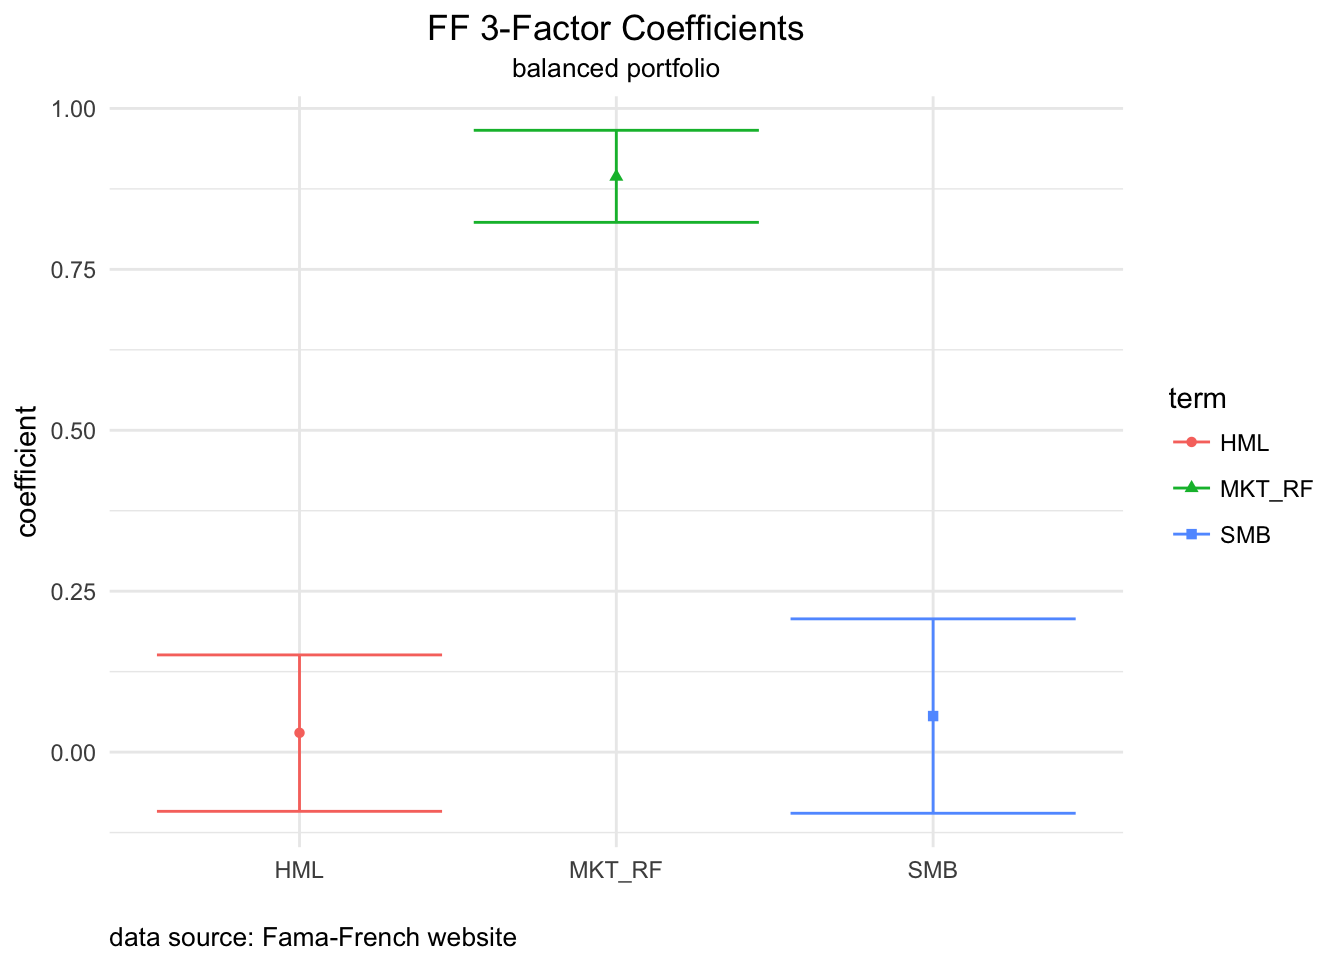 Fama-French factor betas